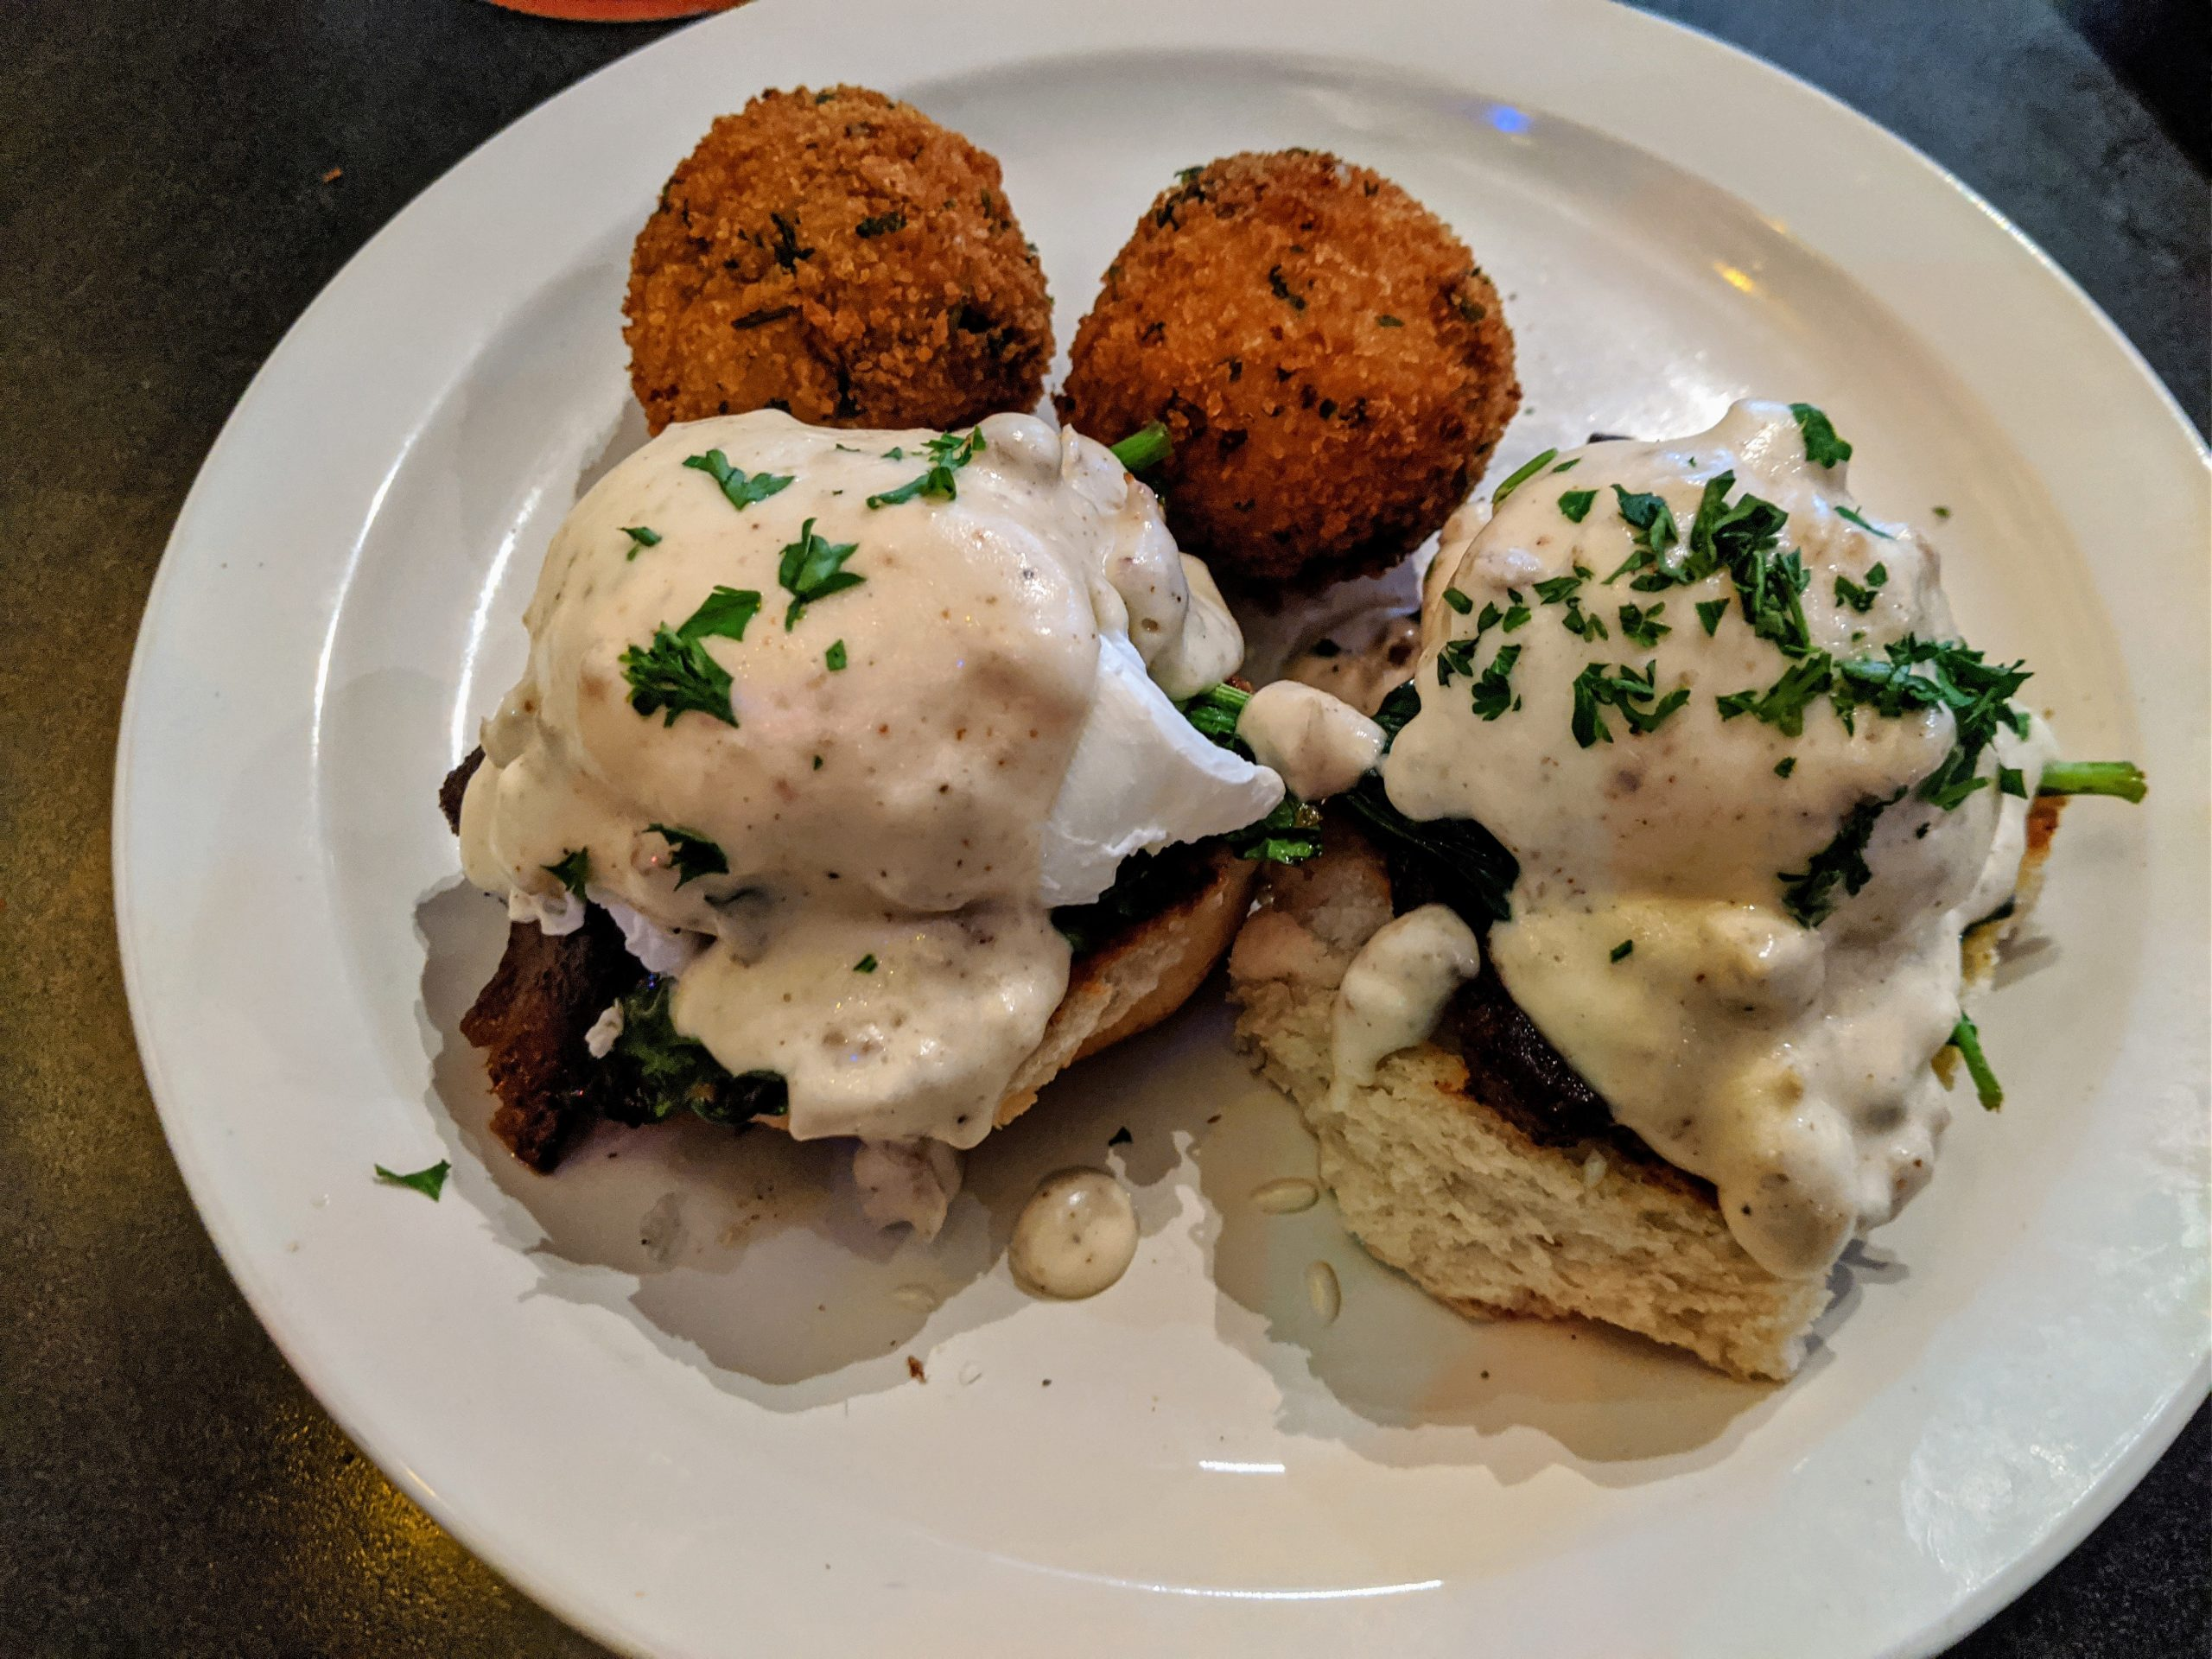 A southern style eggs benedict